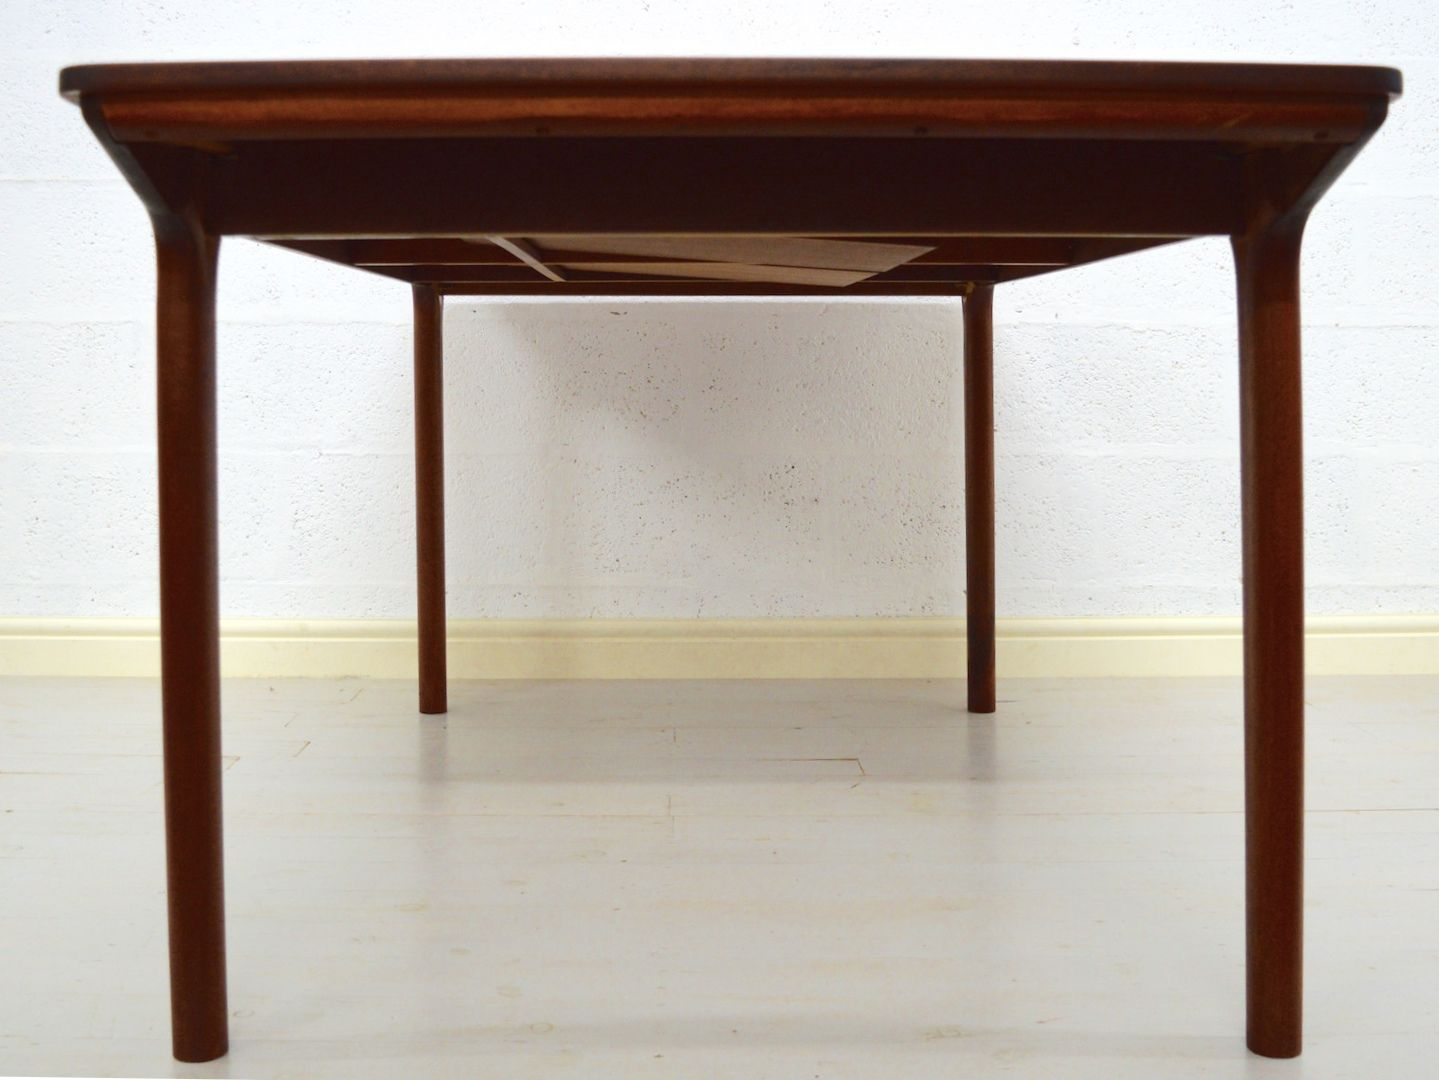 Vintage Teak Dining Table from McIntosh for sale at Pamono : vintage teak dining table from mcintosh 4 from www.pamono.com size 1439 x 1080 jpeg 480kB